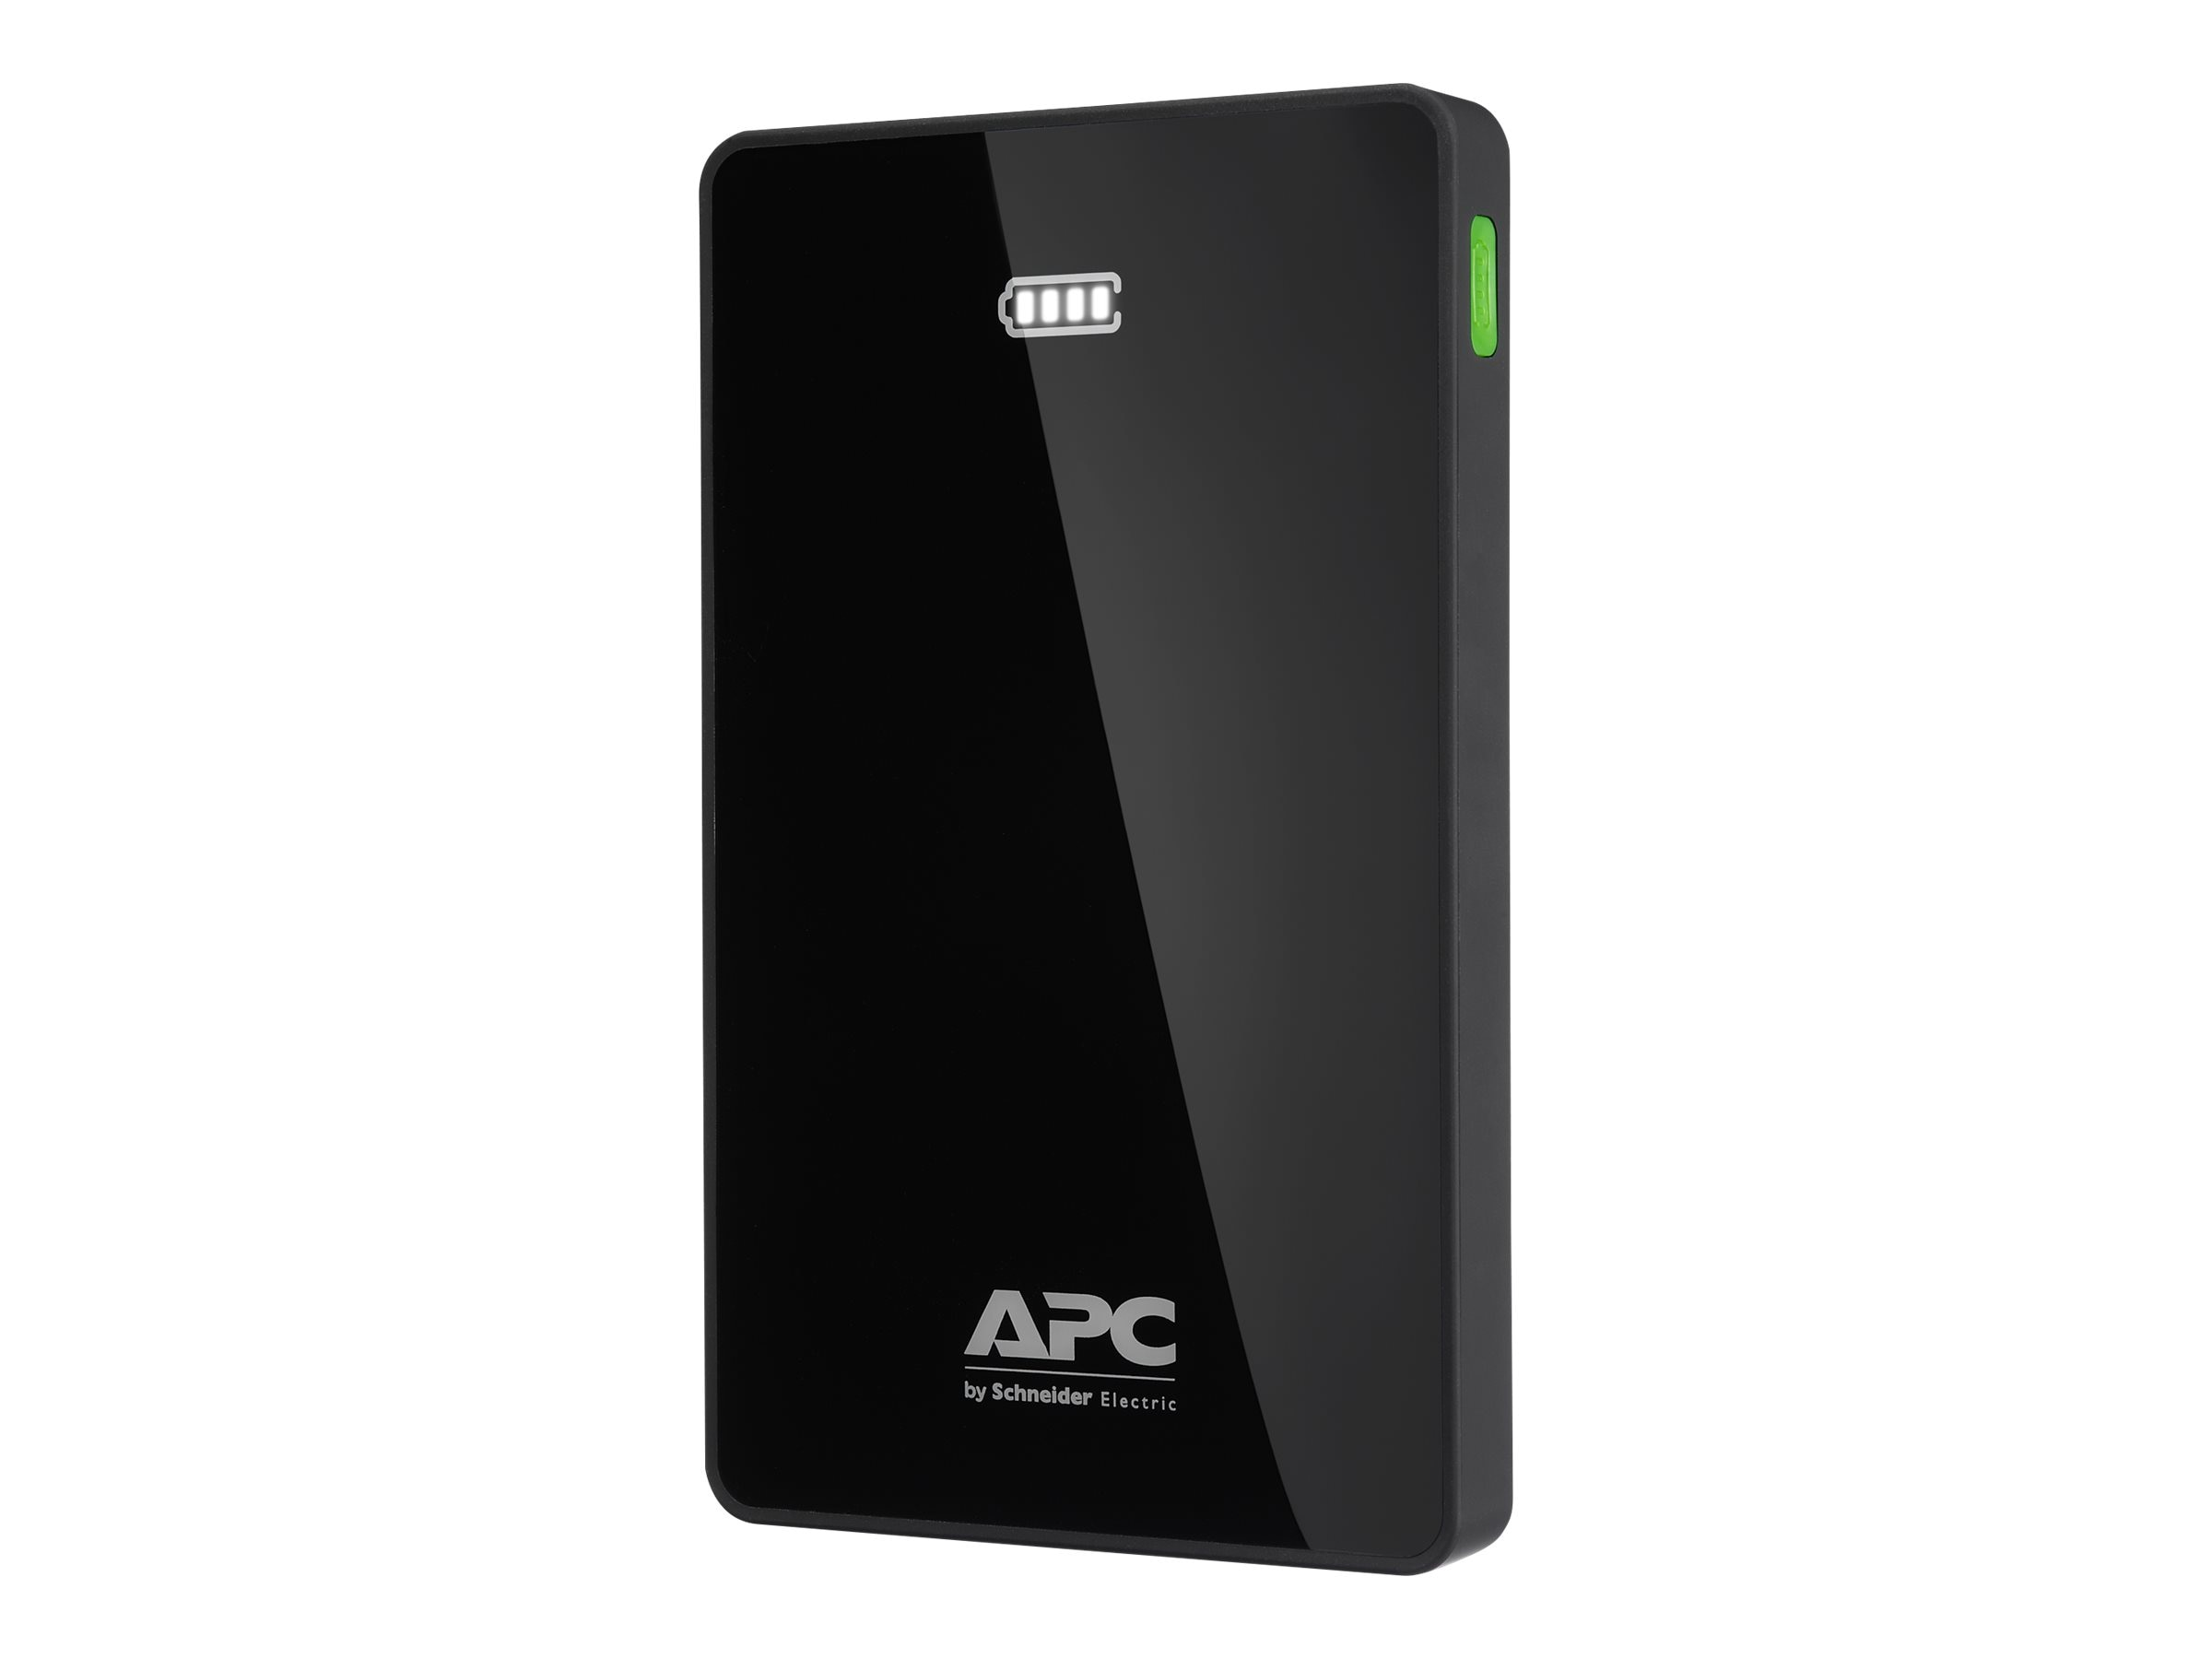 APC Mobile Power Pack 10,000mAh, Black